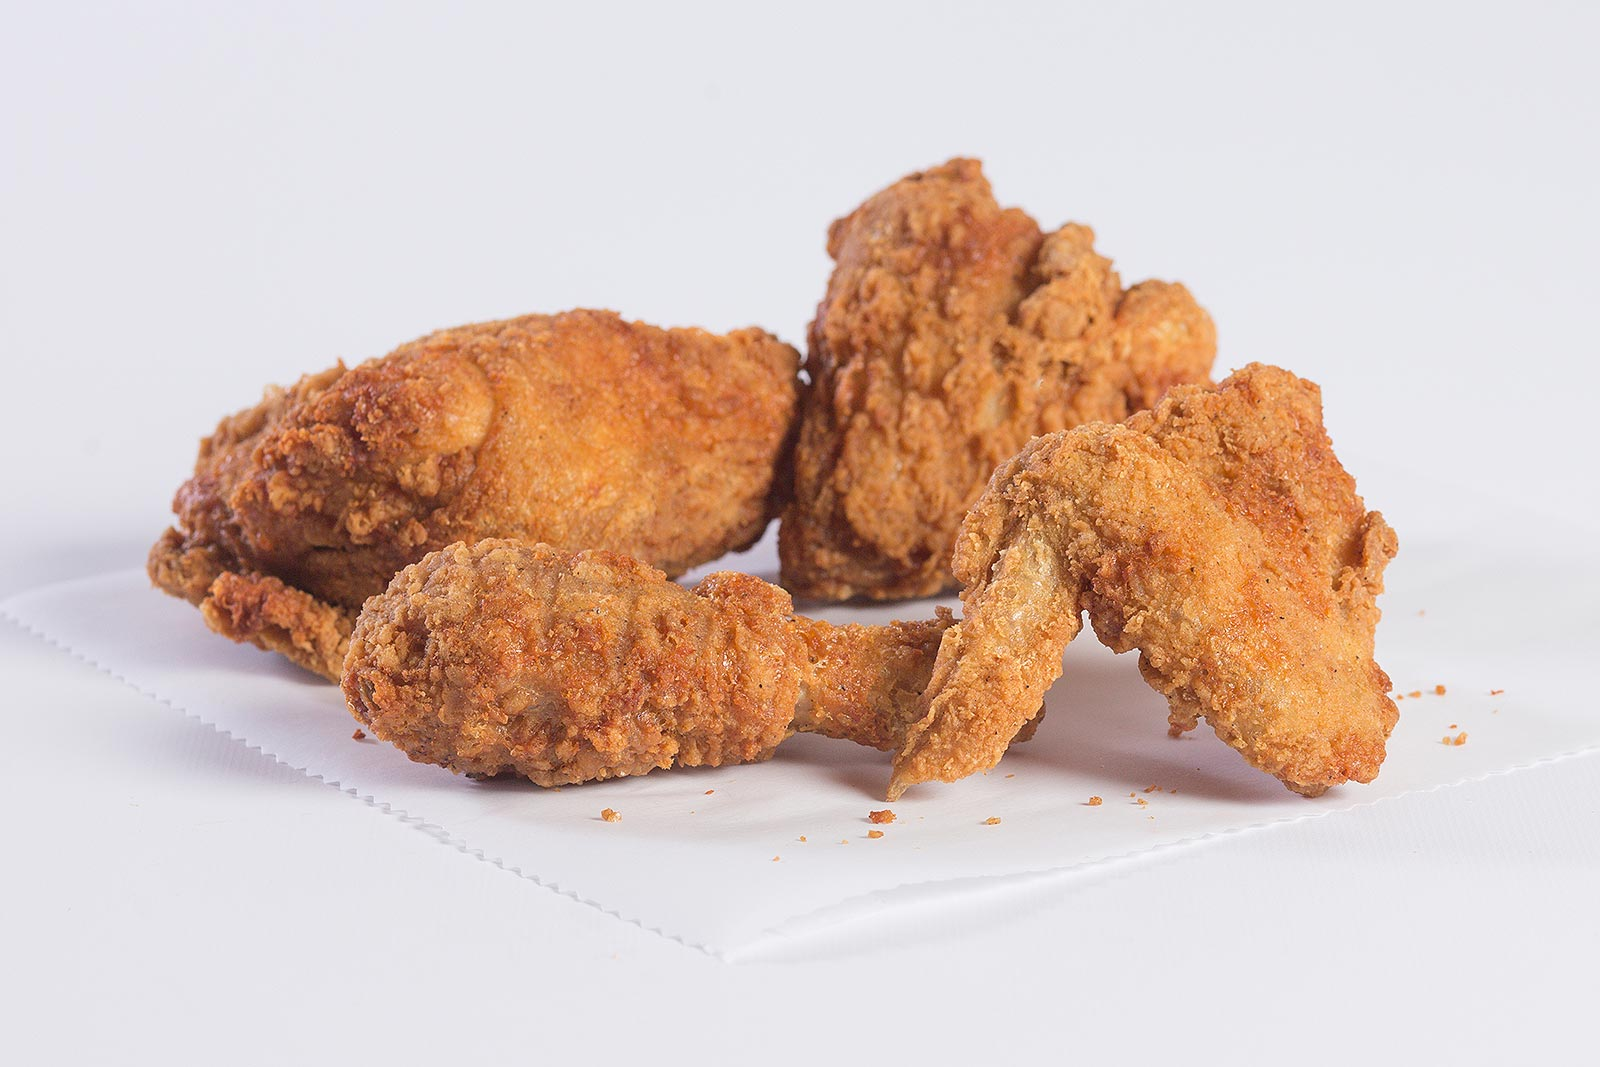 Super Chik'n 8pc Cut, Bulk Pack 15 lb. case image